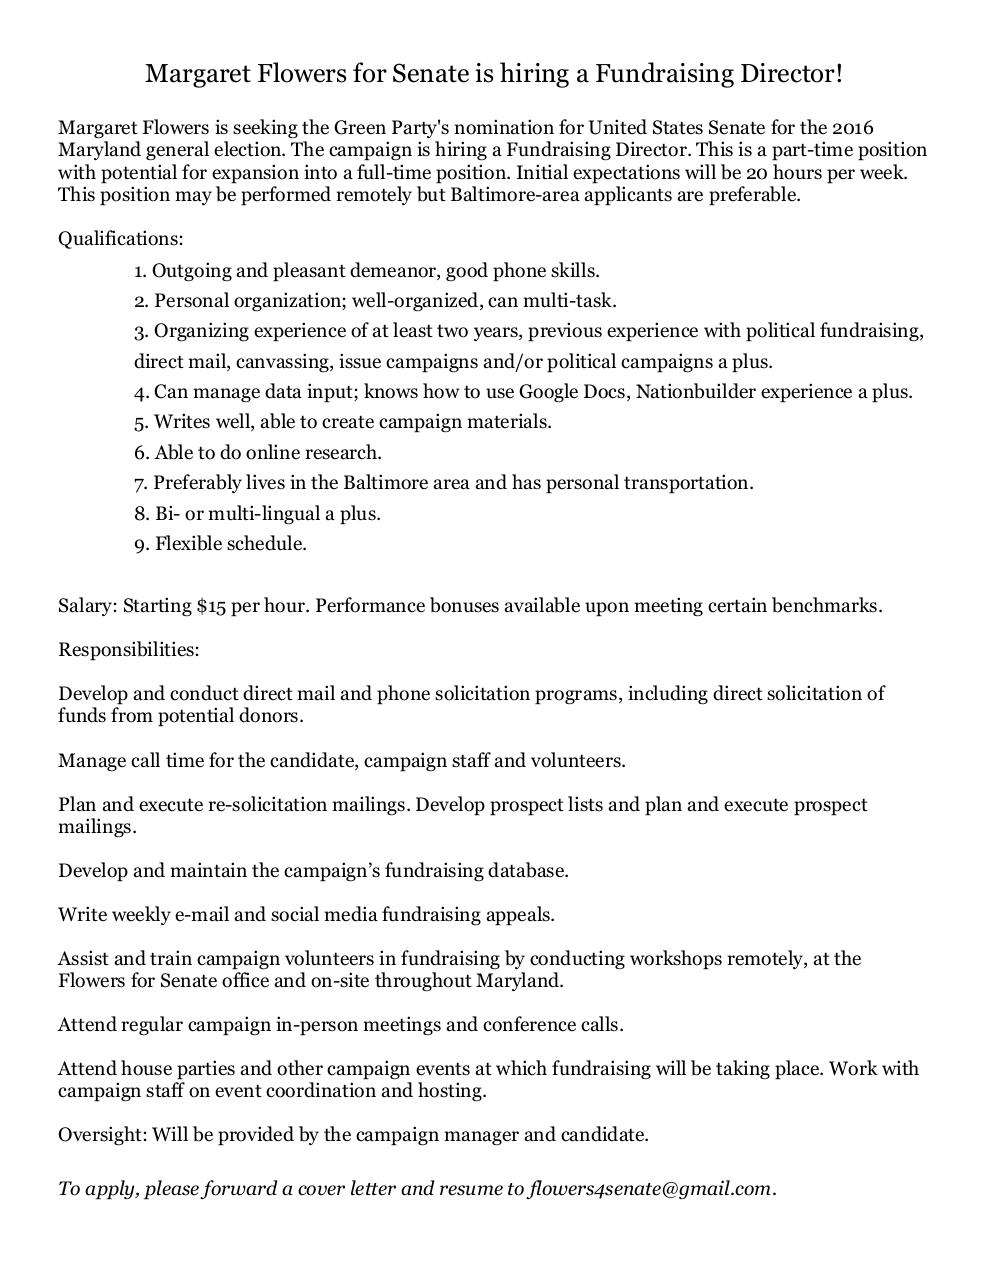 political campaign manager resume inspirenow fundraising director pdf pdf archiveoversight will be provided by the campaign manager and candidate to apply